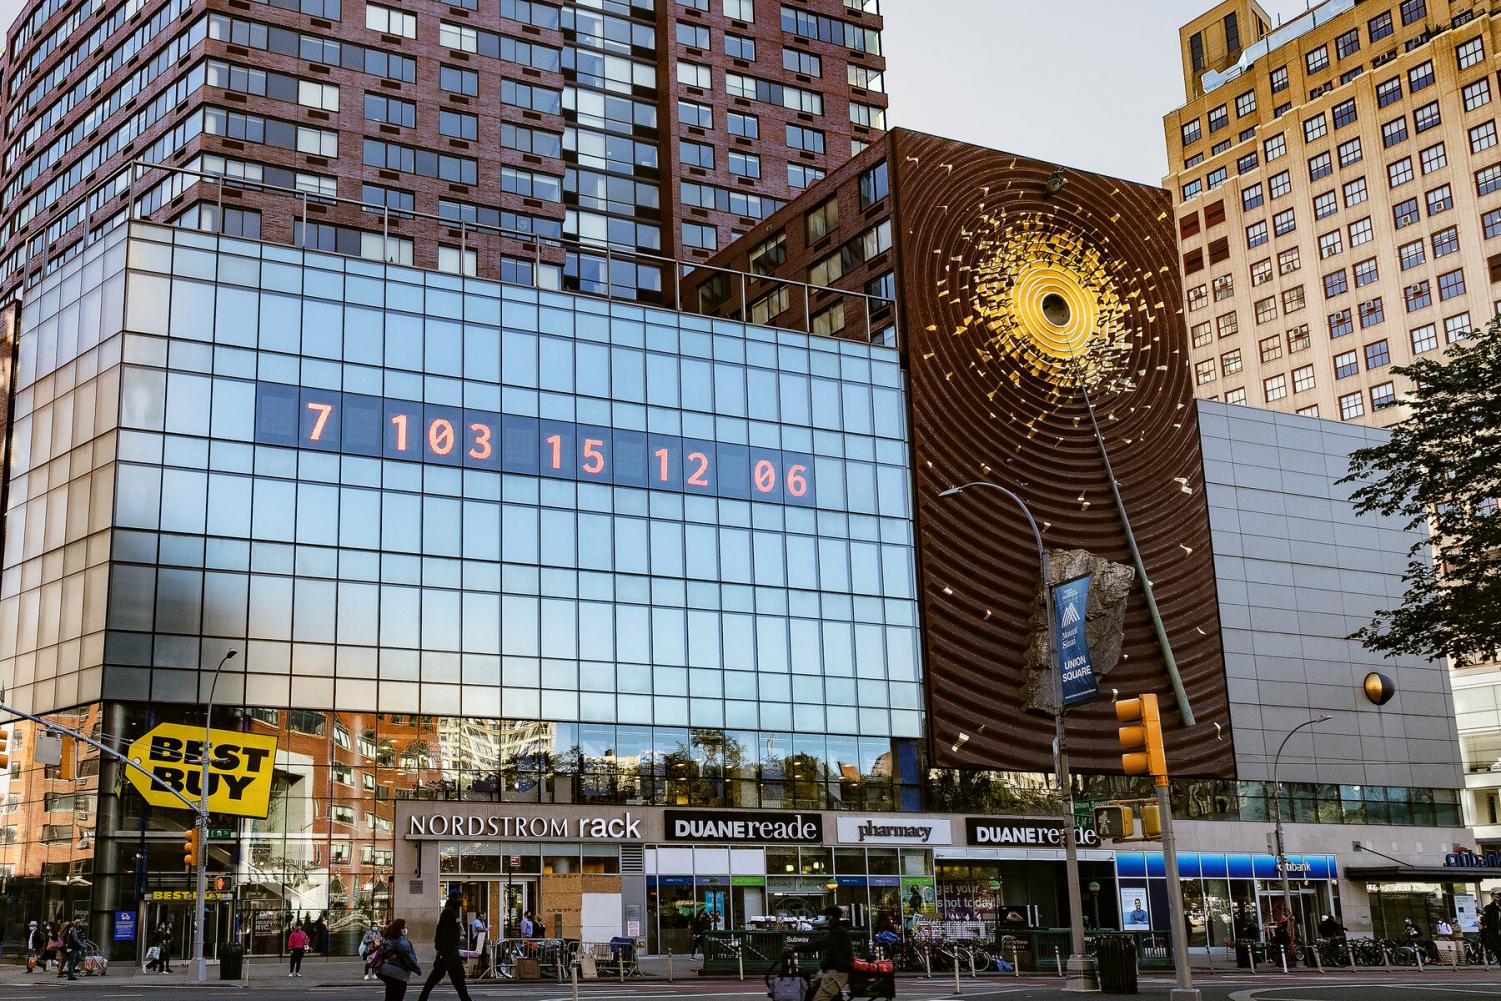 The NYC Climate Countdown Clock